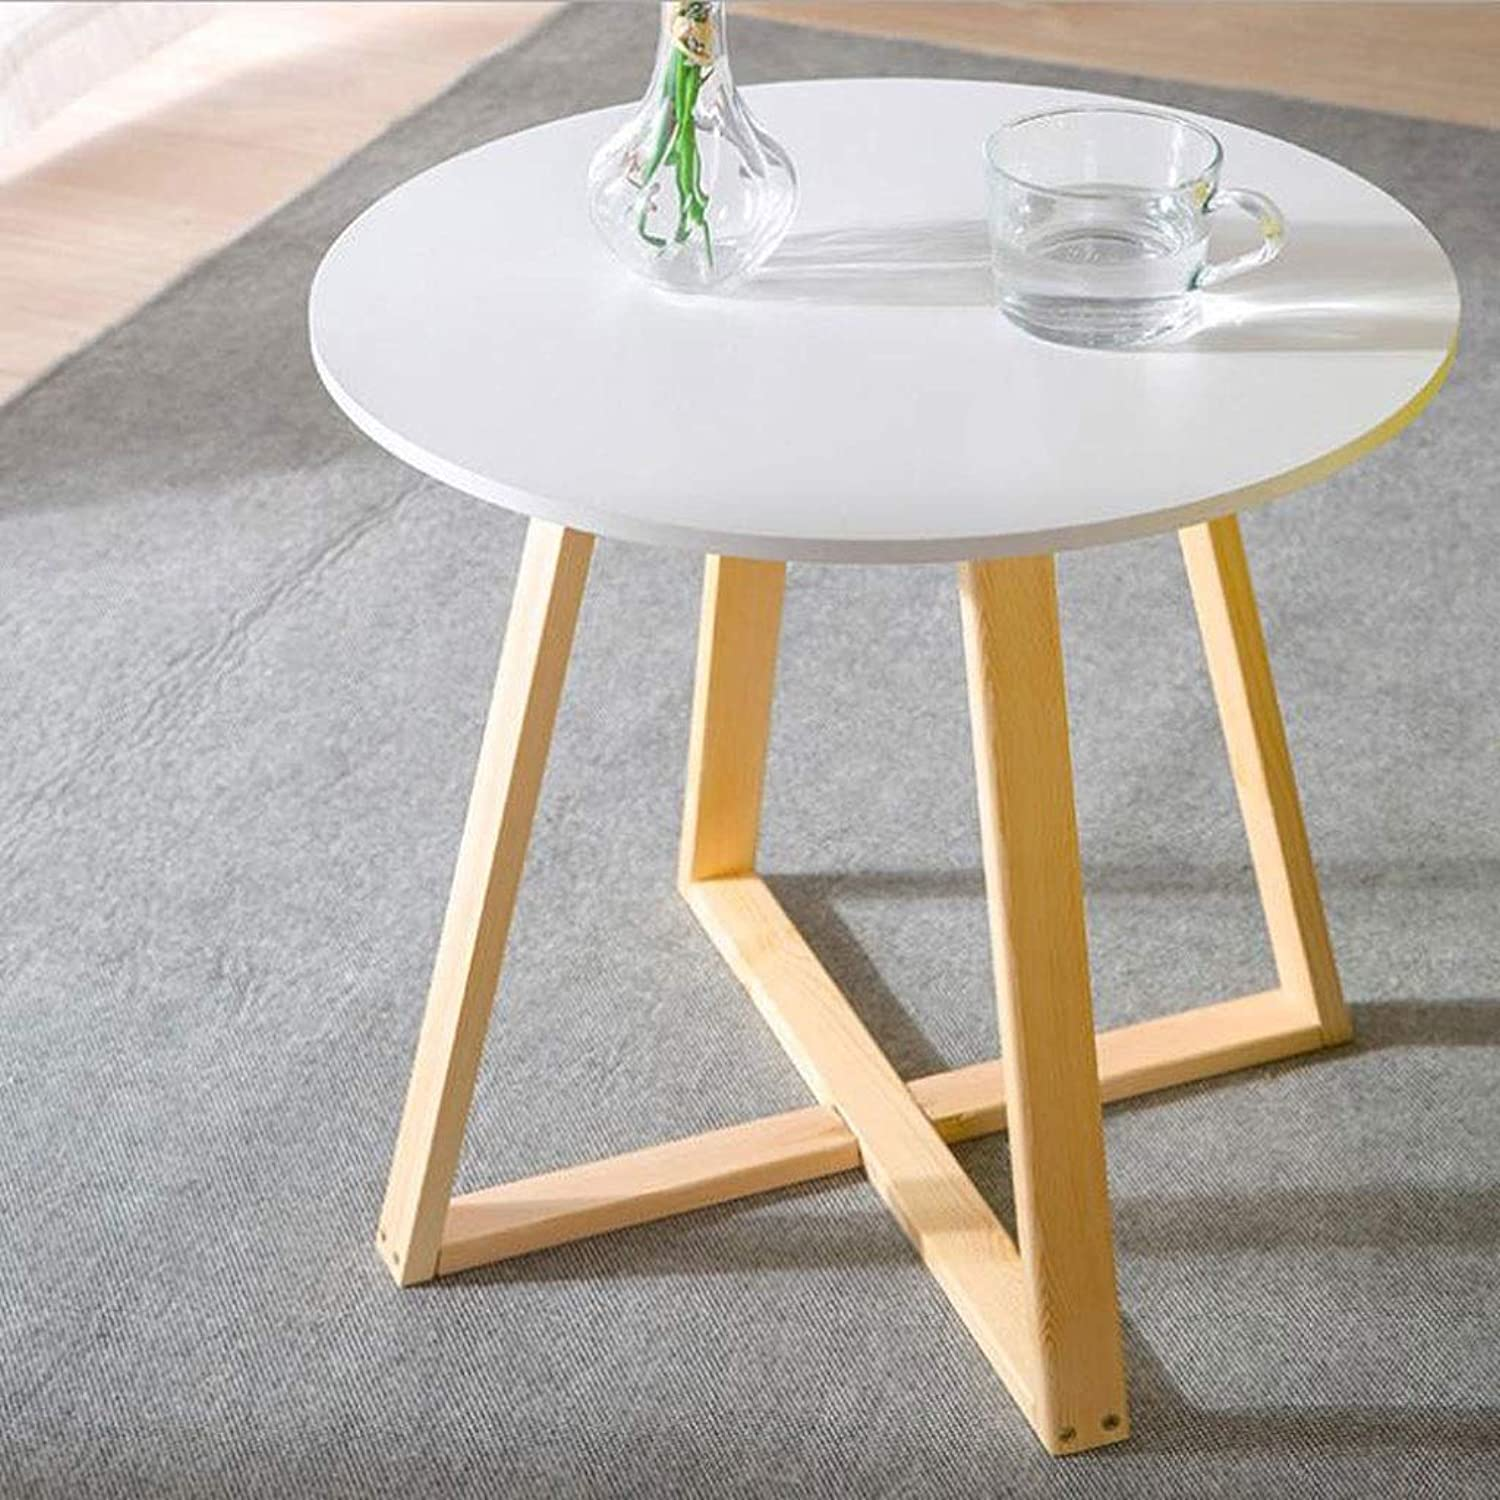 T-Day End Tables Bedside Table Side Table Retro MDF Round Side Coffee Dining Lamp End Table, Small Living Room Table (color   White, Size   60cm)